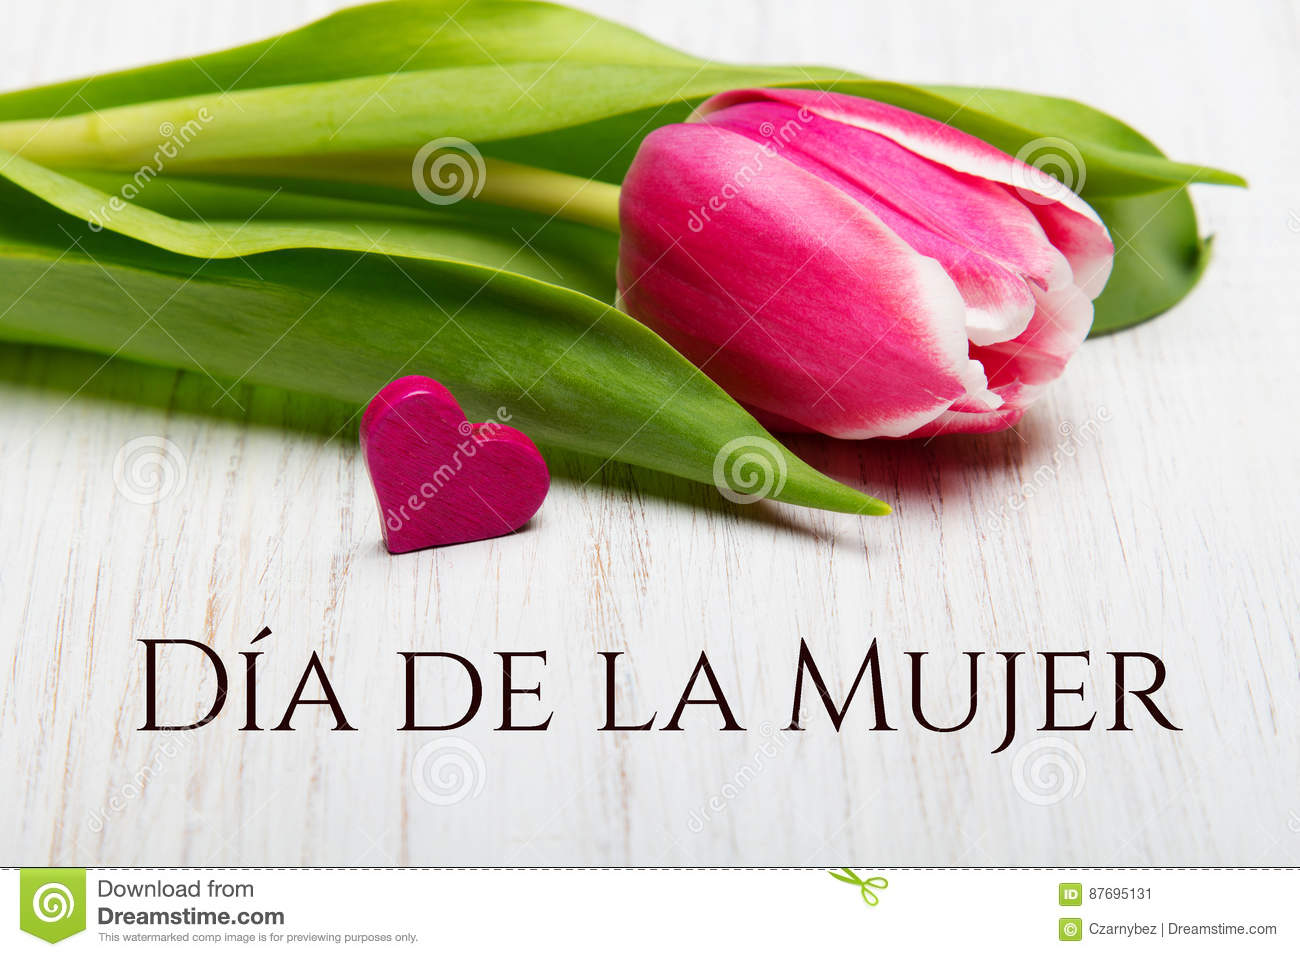 Womens day card with spanish words da de la mujer stock image download comp izmirmasajfo